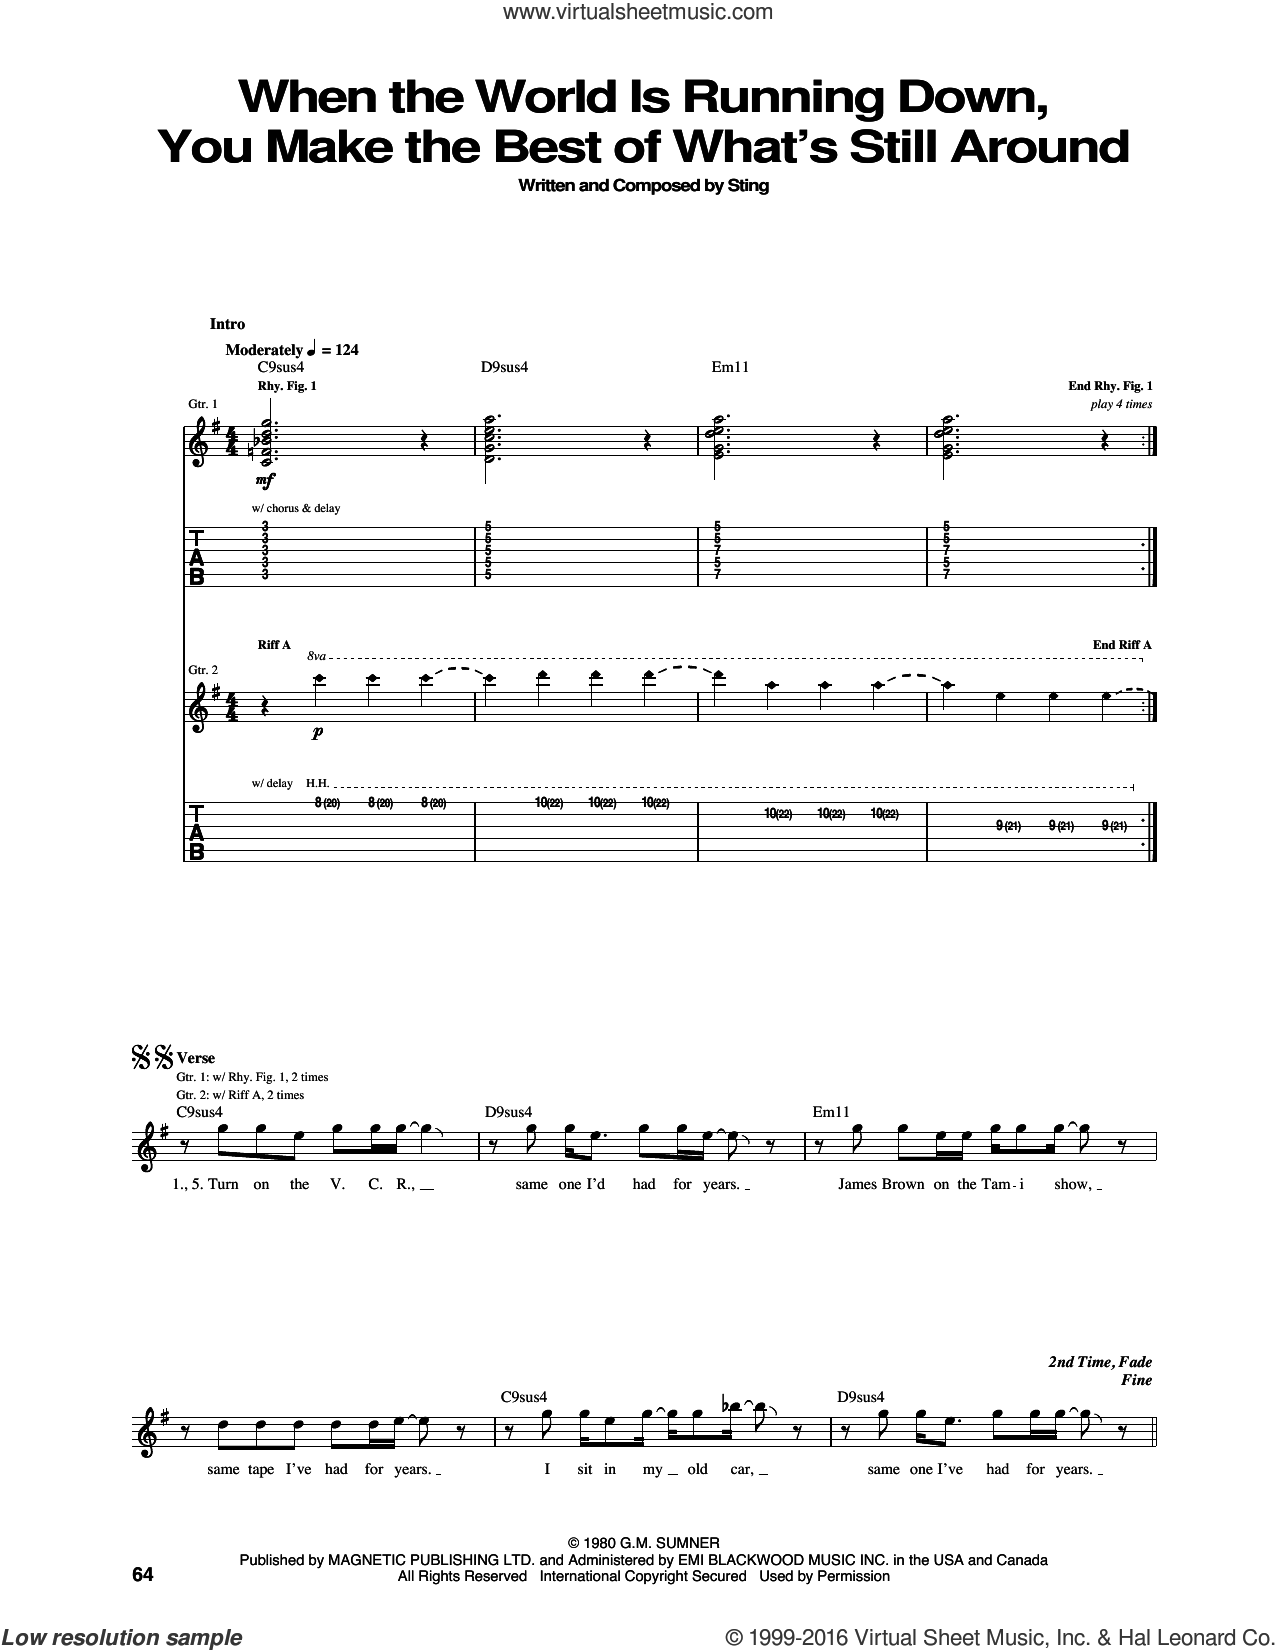 When The World Is Running Down, You Make The Best Of What's Still Around sheet music for guitar (tablature) by The Police and Sting, intermediate